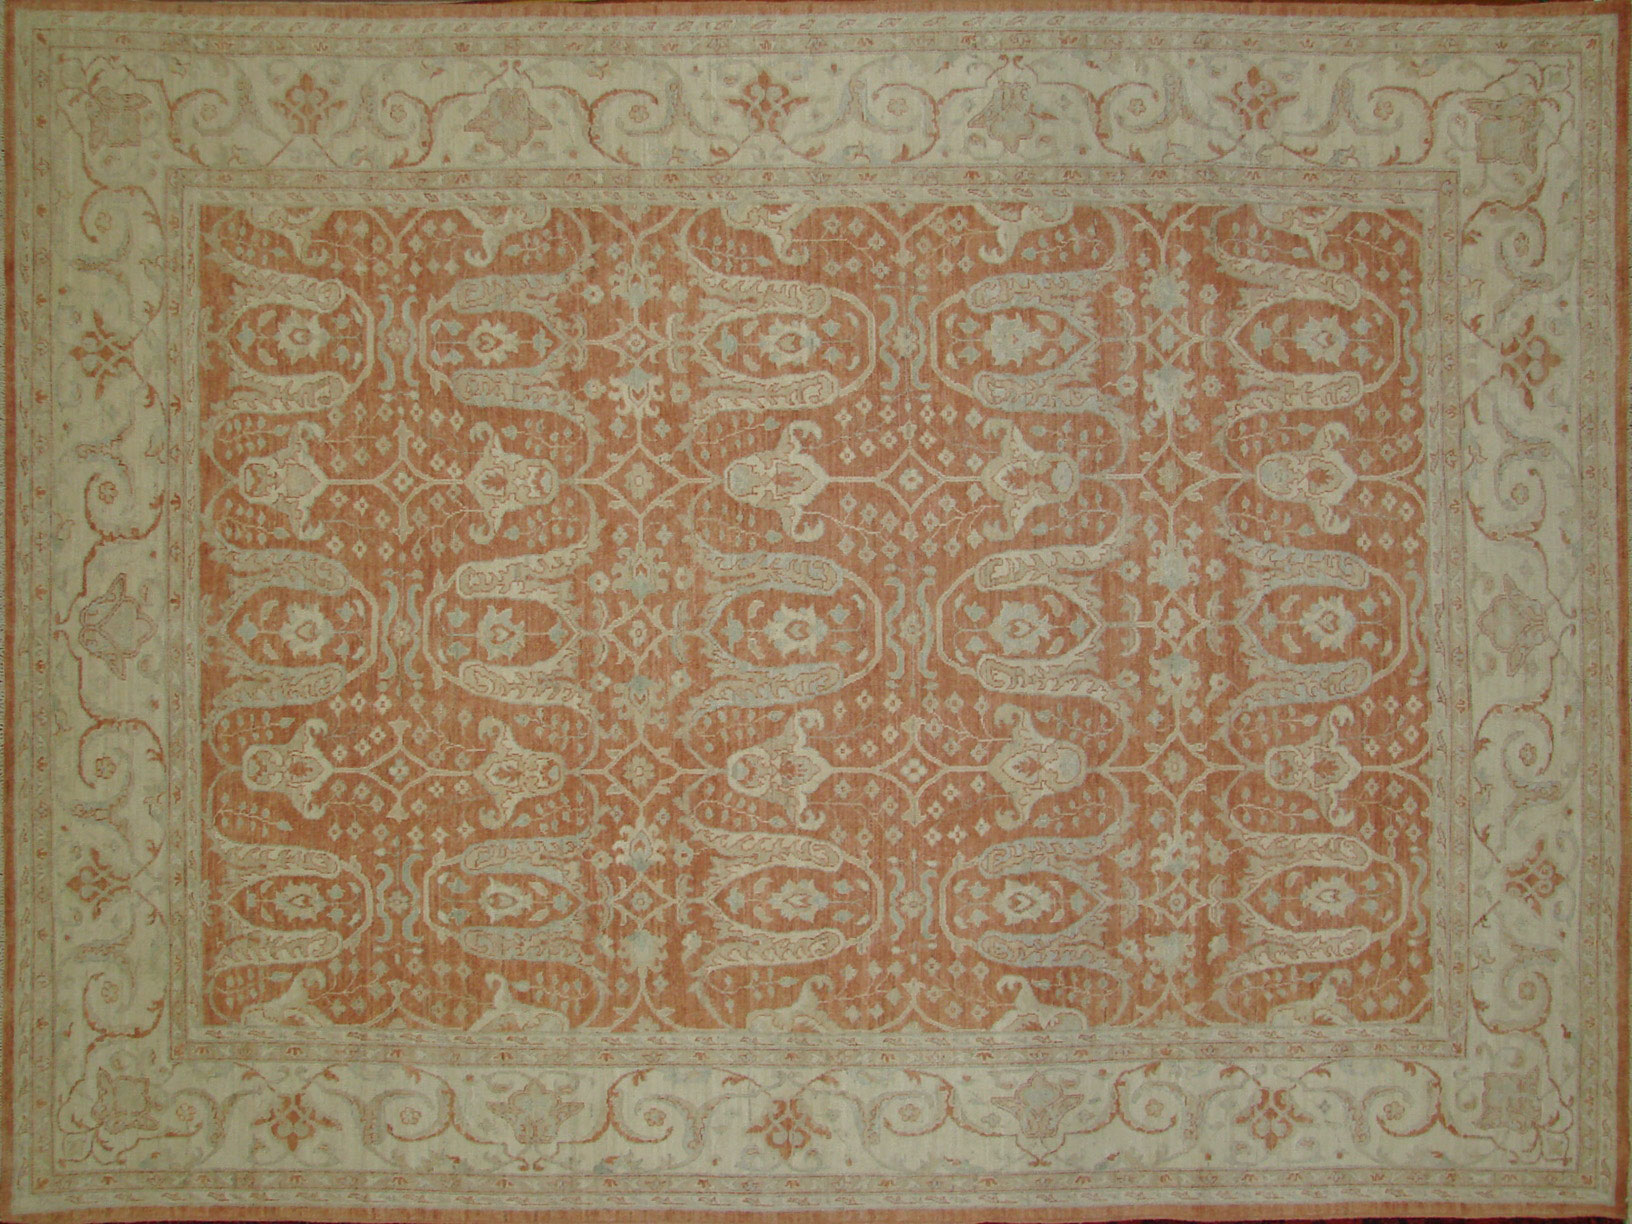 9x12 Peshawar Hand Knotted Wool Area Rug - MR18432